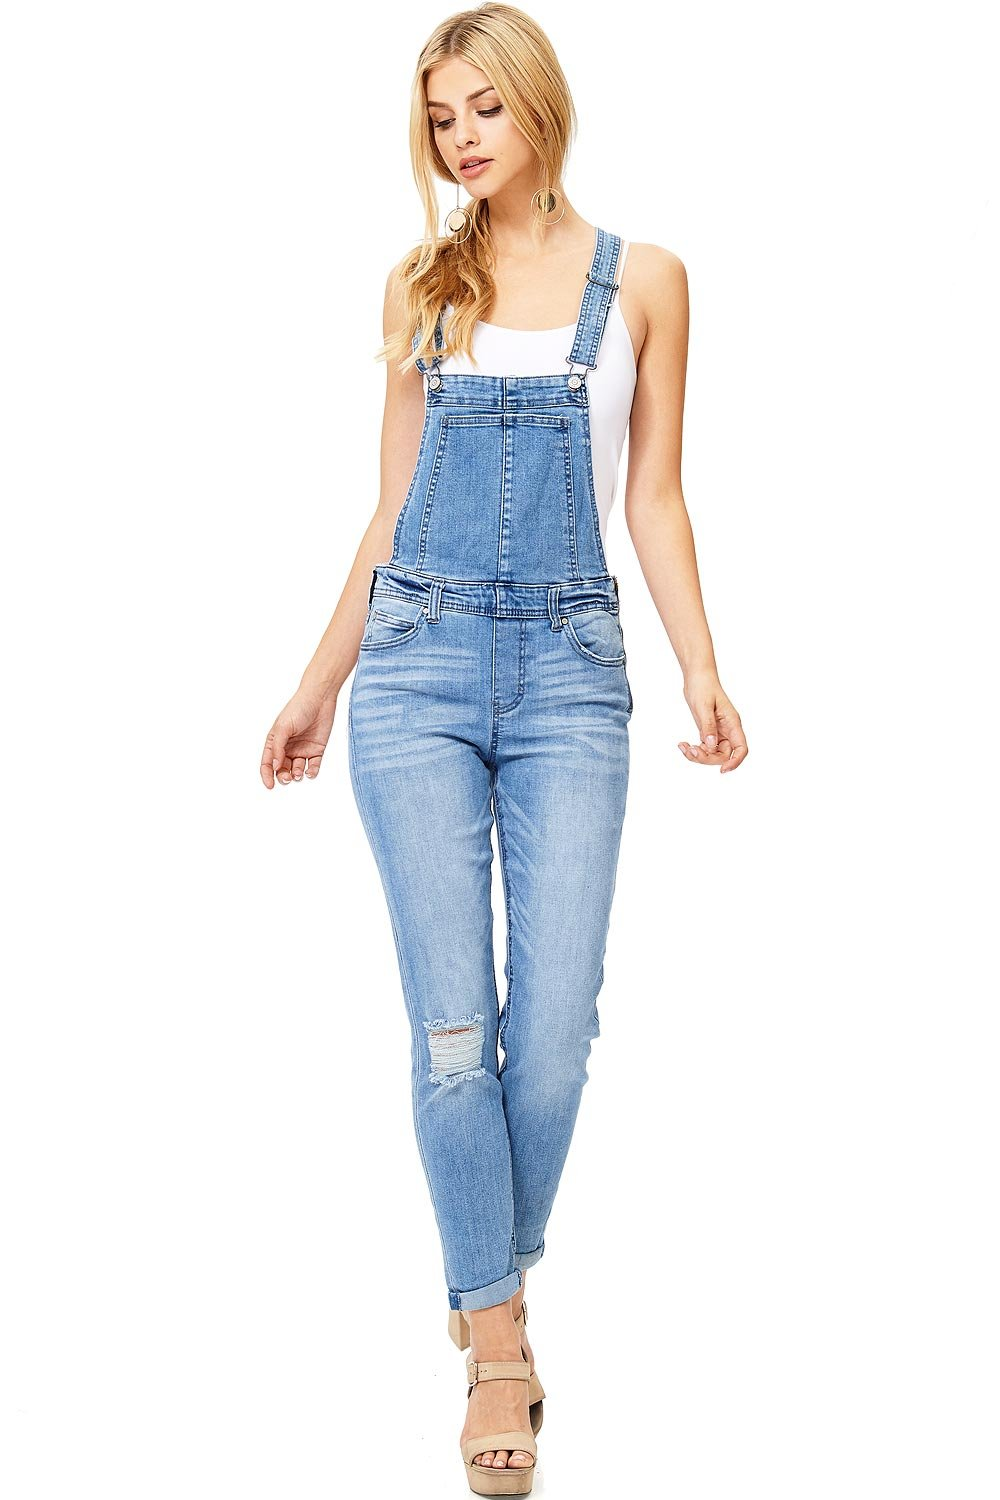 Celebrity Pink Women's Juniors Vintage Style Denim Overalls (11, Denim)